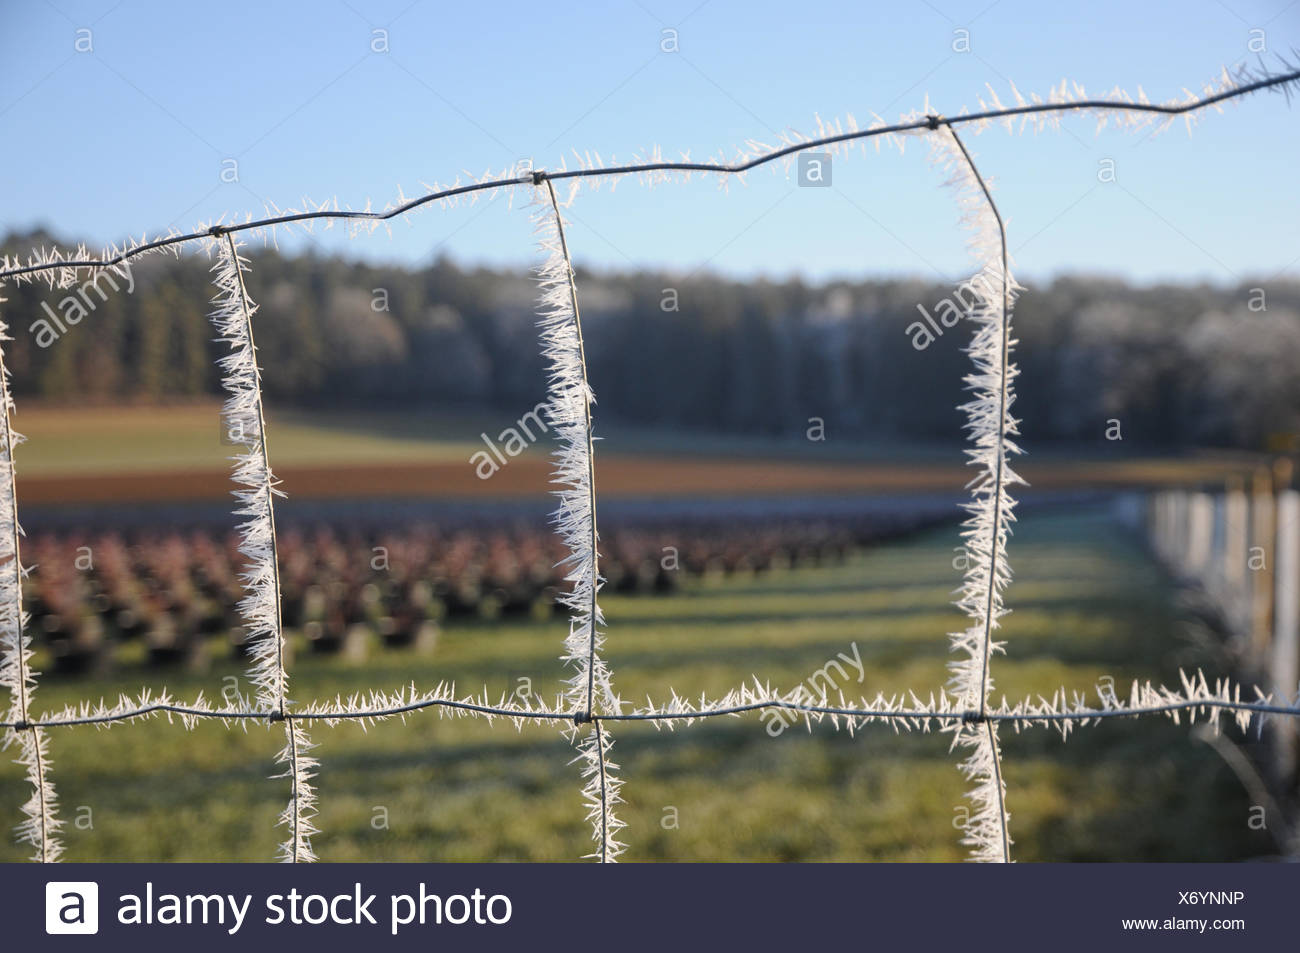 Wild Protecting Fence, White Frost - Stock Image